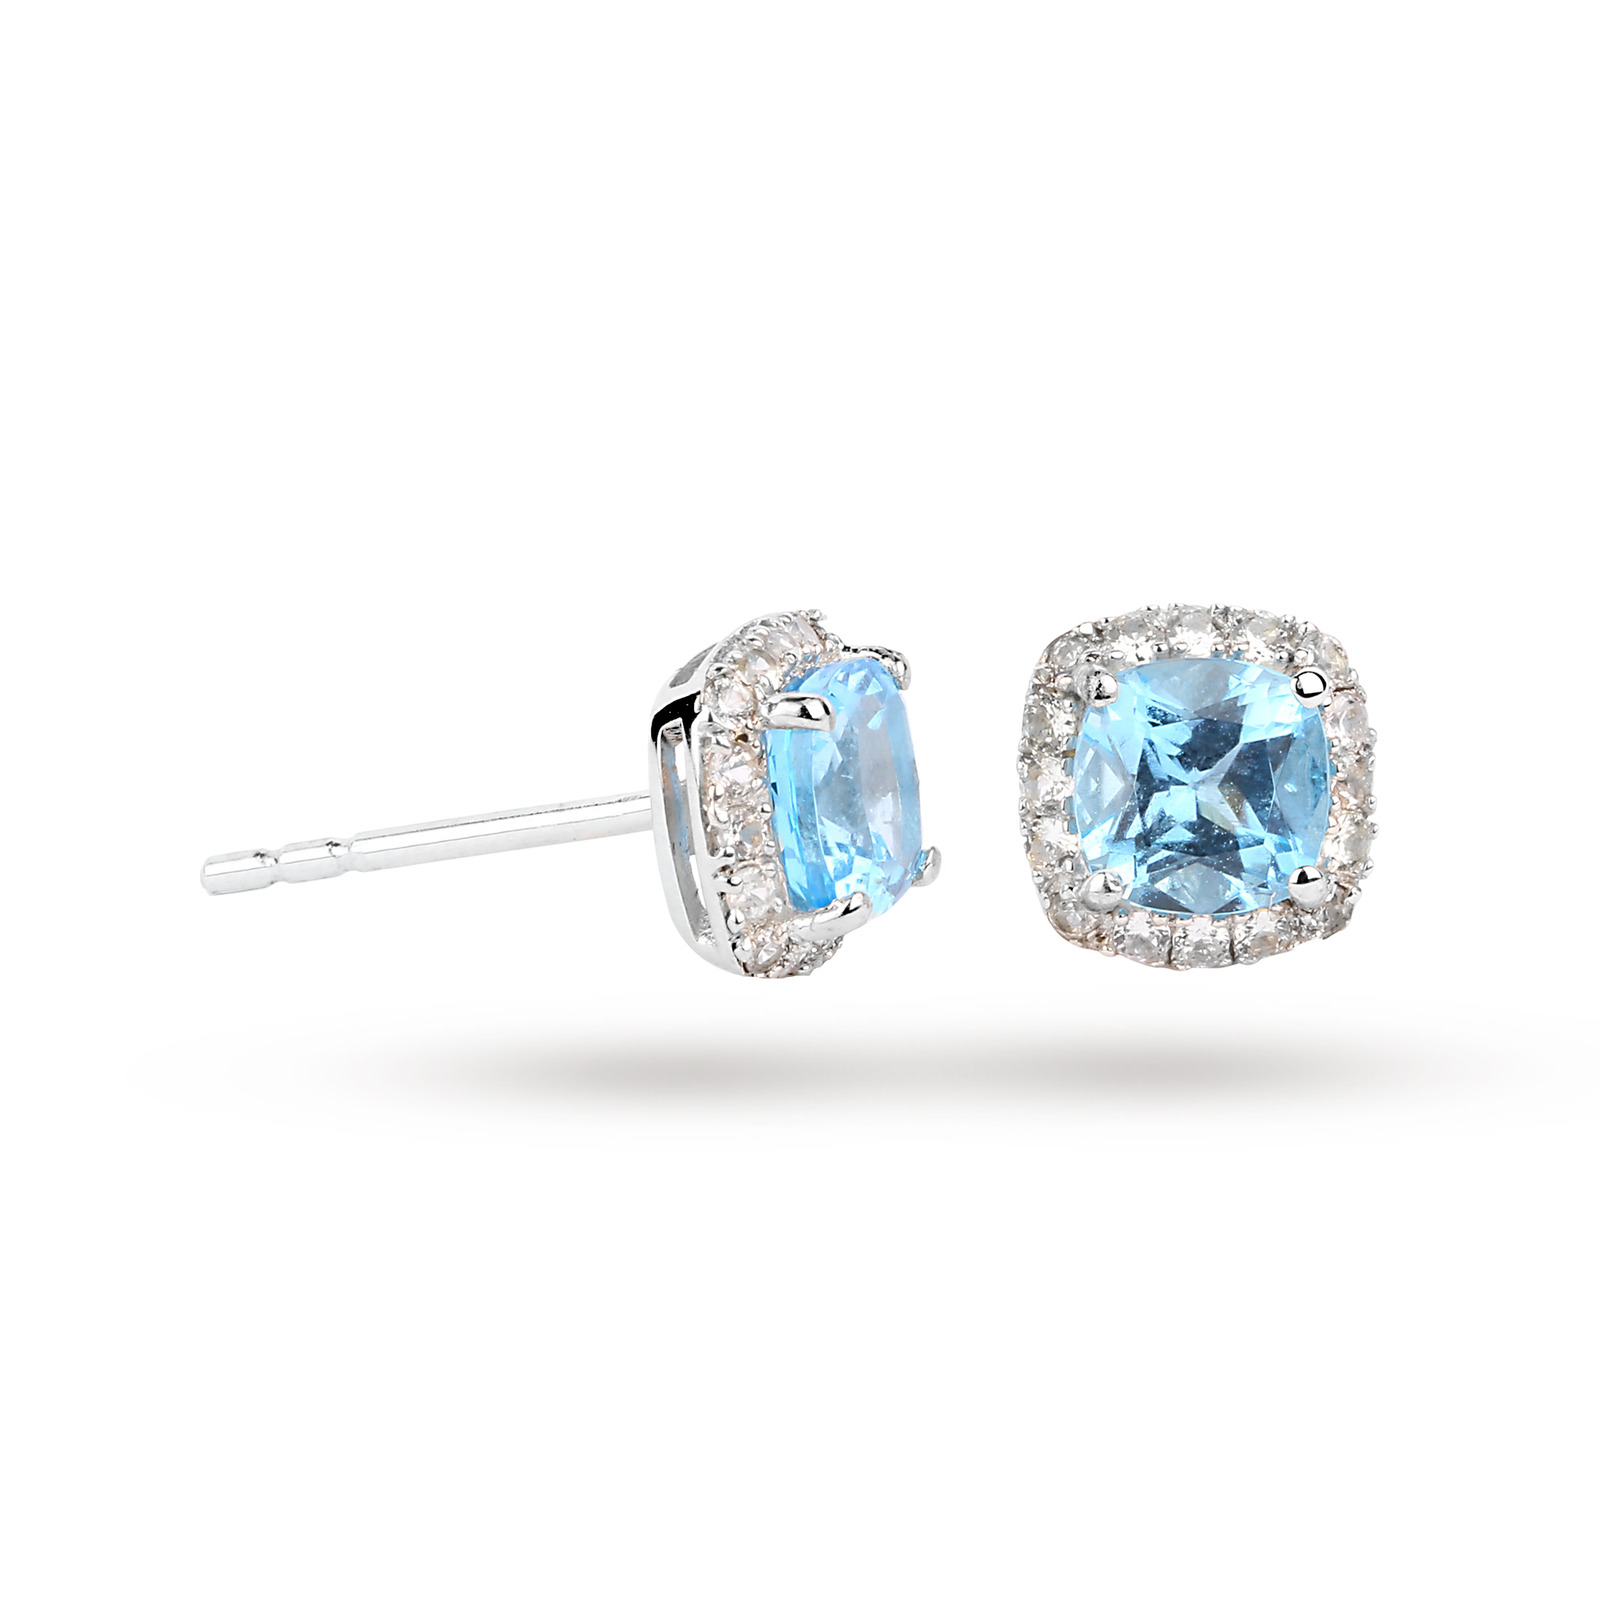 dp stud jewelry earrings blue back white round com topaz amazon gold screw